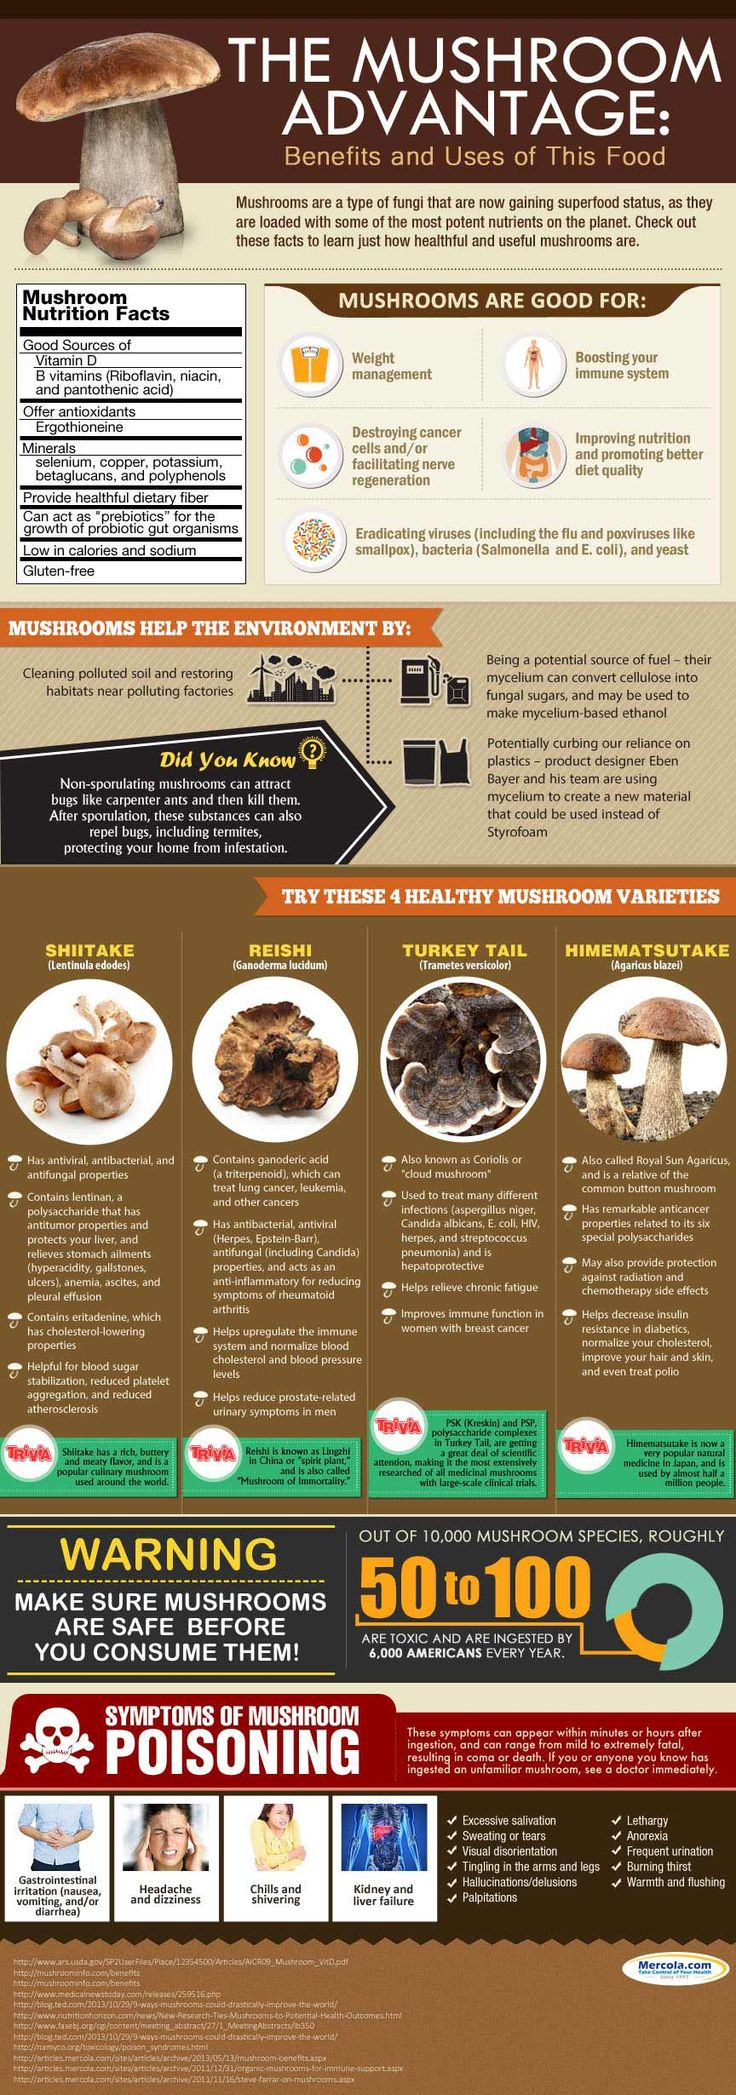 Tips to Take Full Advantage of the Benefits of Mushrooms.